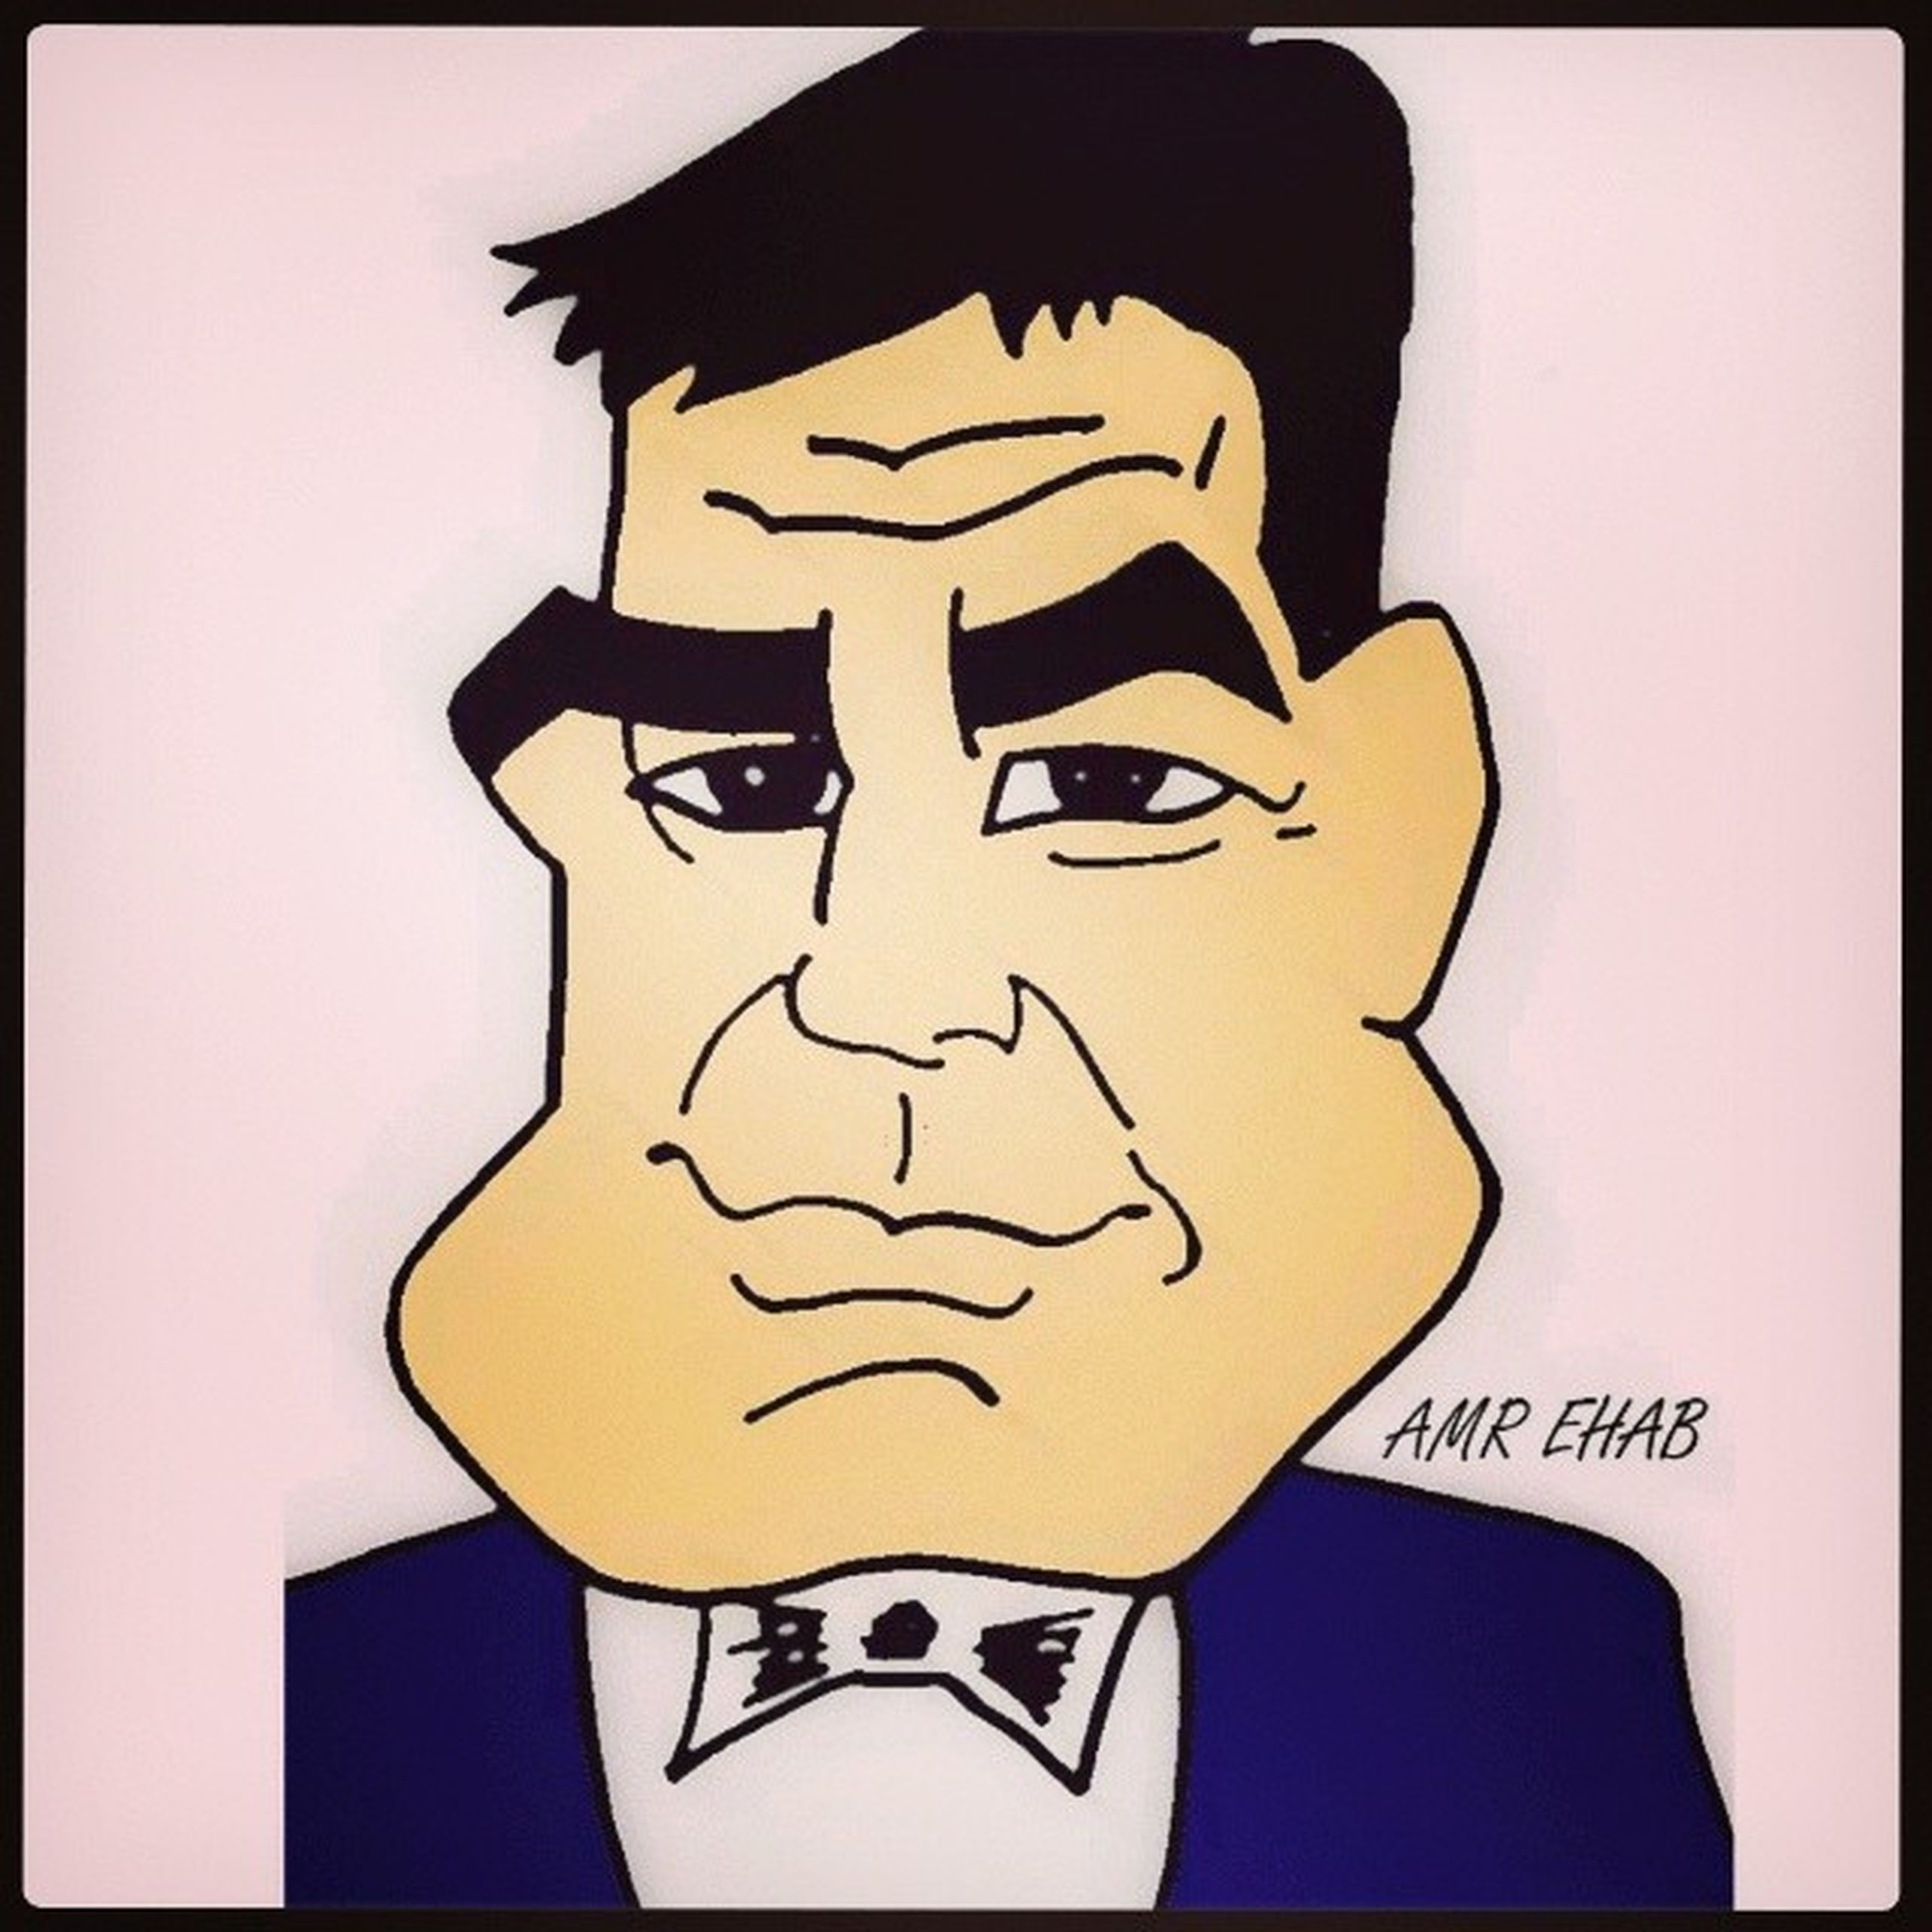 Jeorge Clooney Amazing Edit by mohamed khaled tslm tags_for_likes luf_it from My drawing caricature became cartoon ©